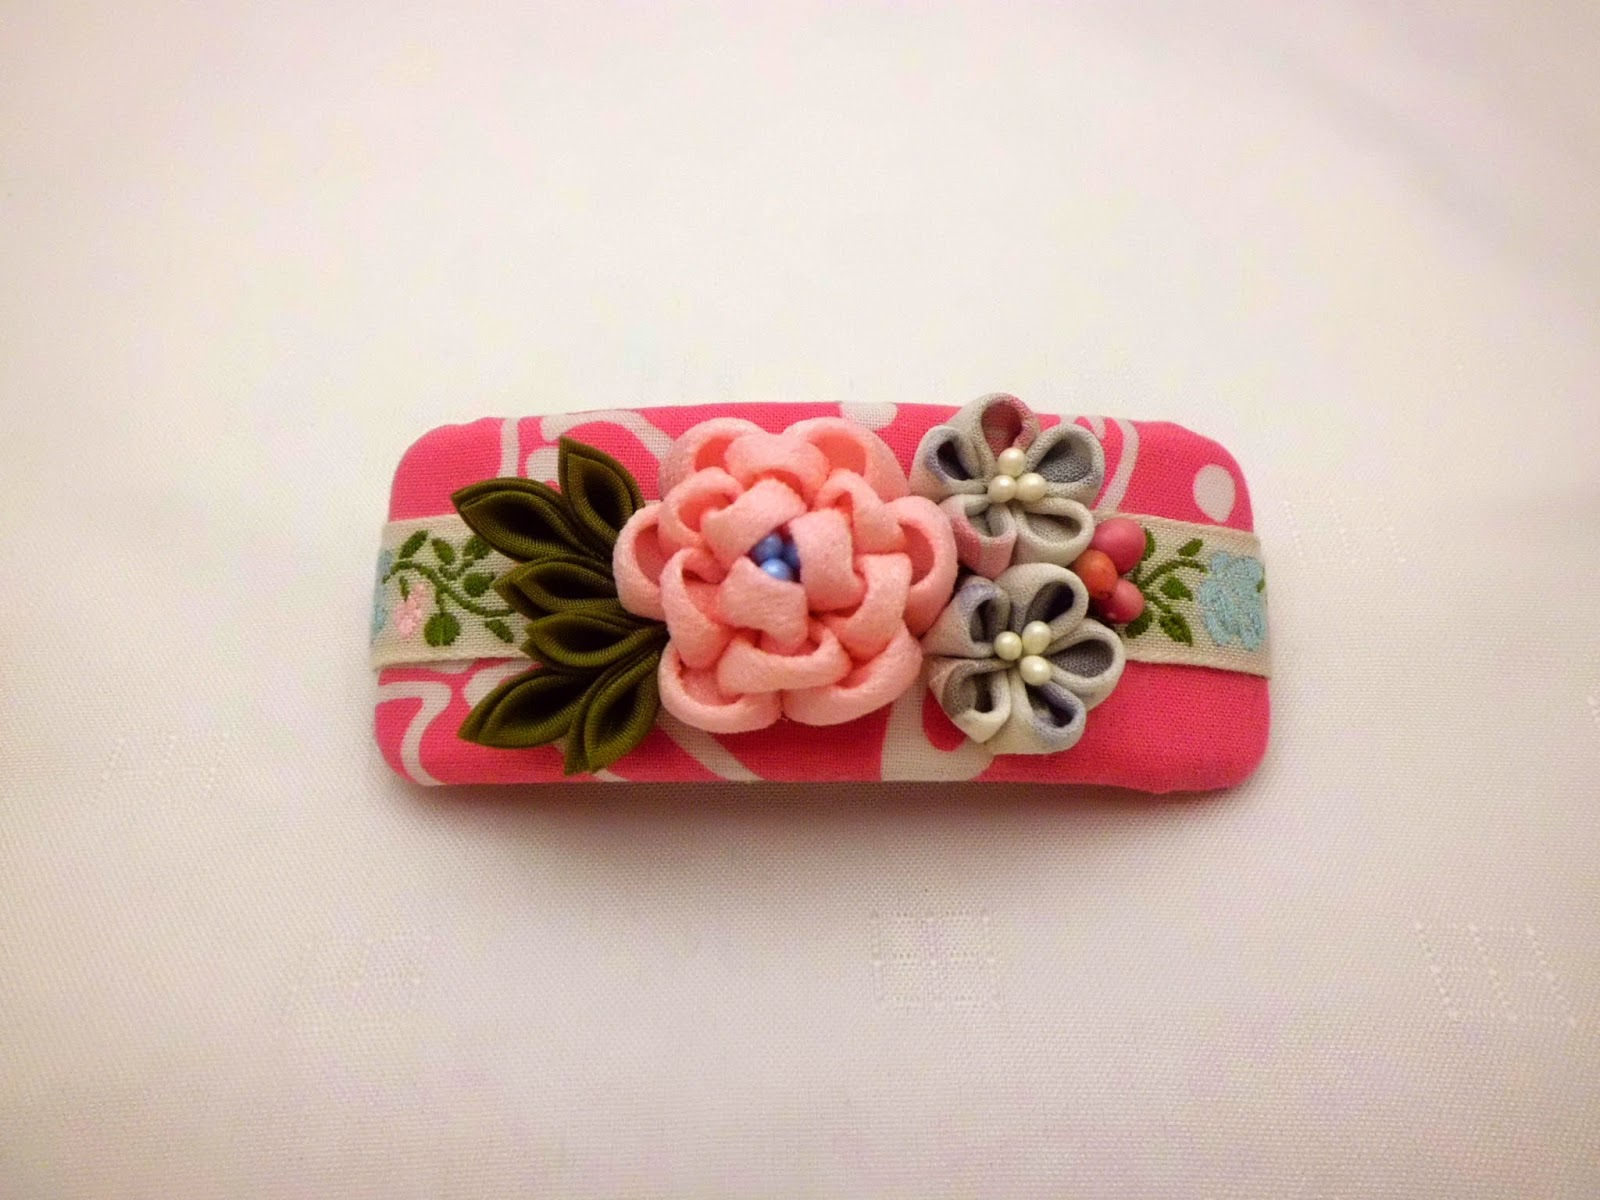 https://www.etsy.com/listing/227152023/handmade-french-barrette-pink-peony